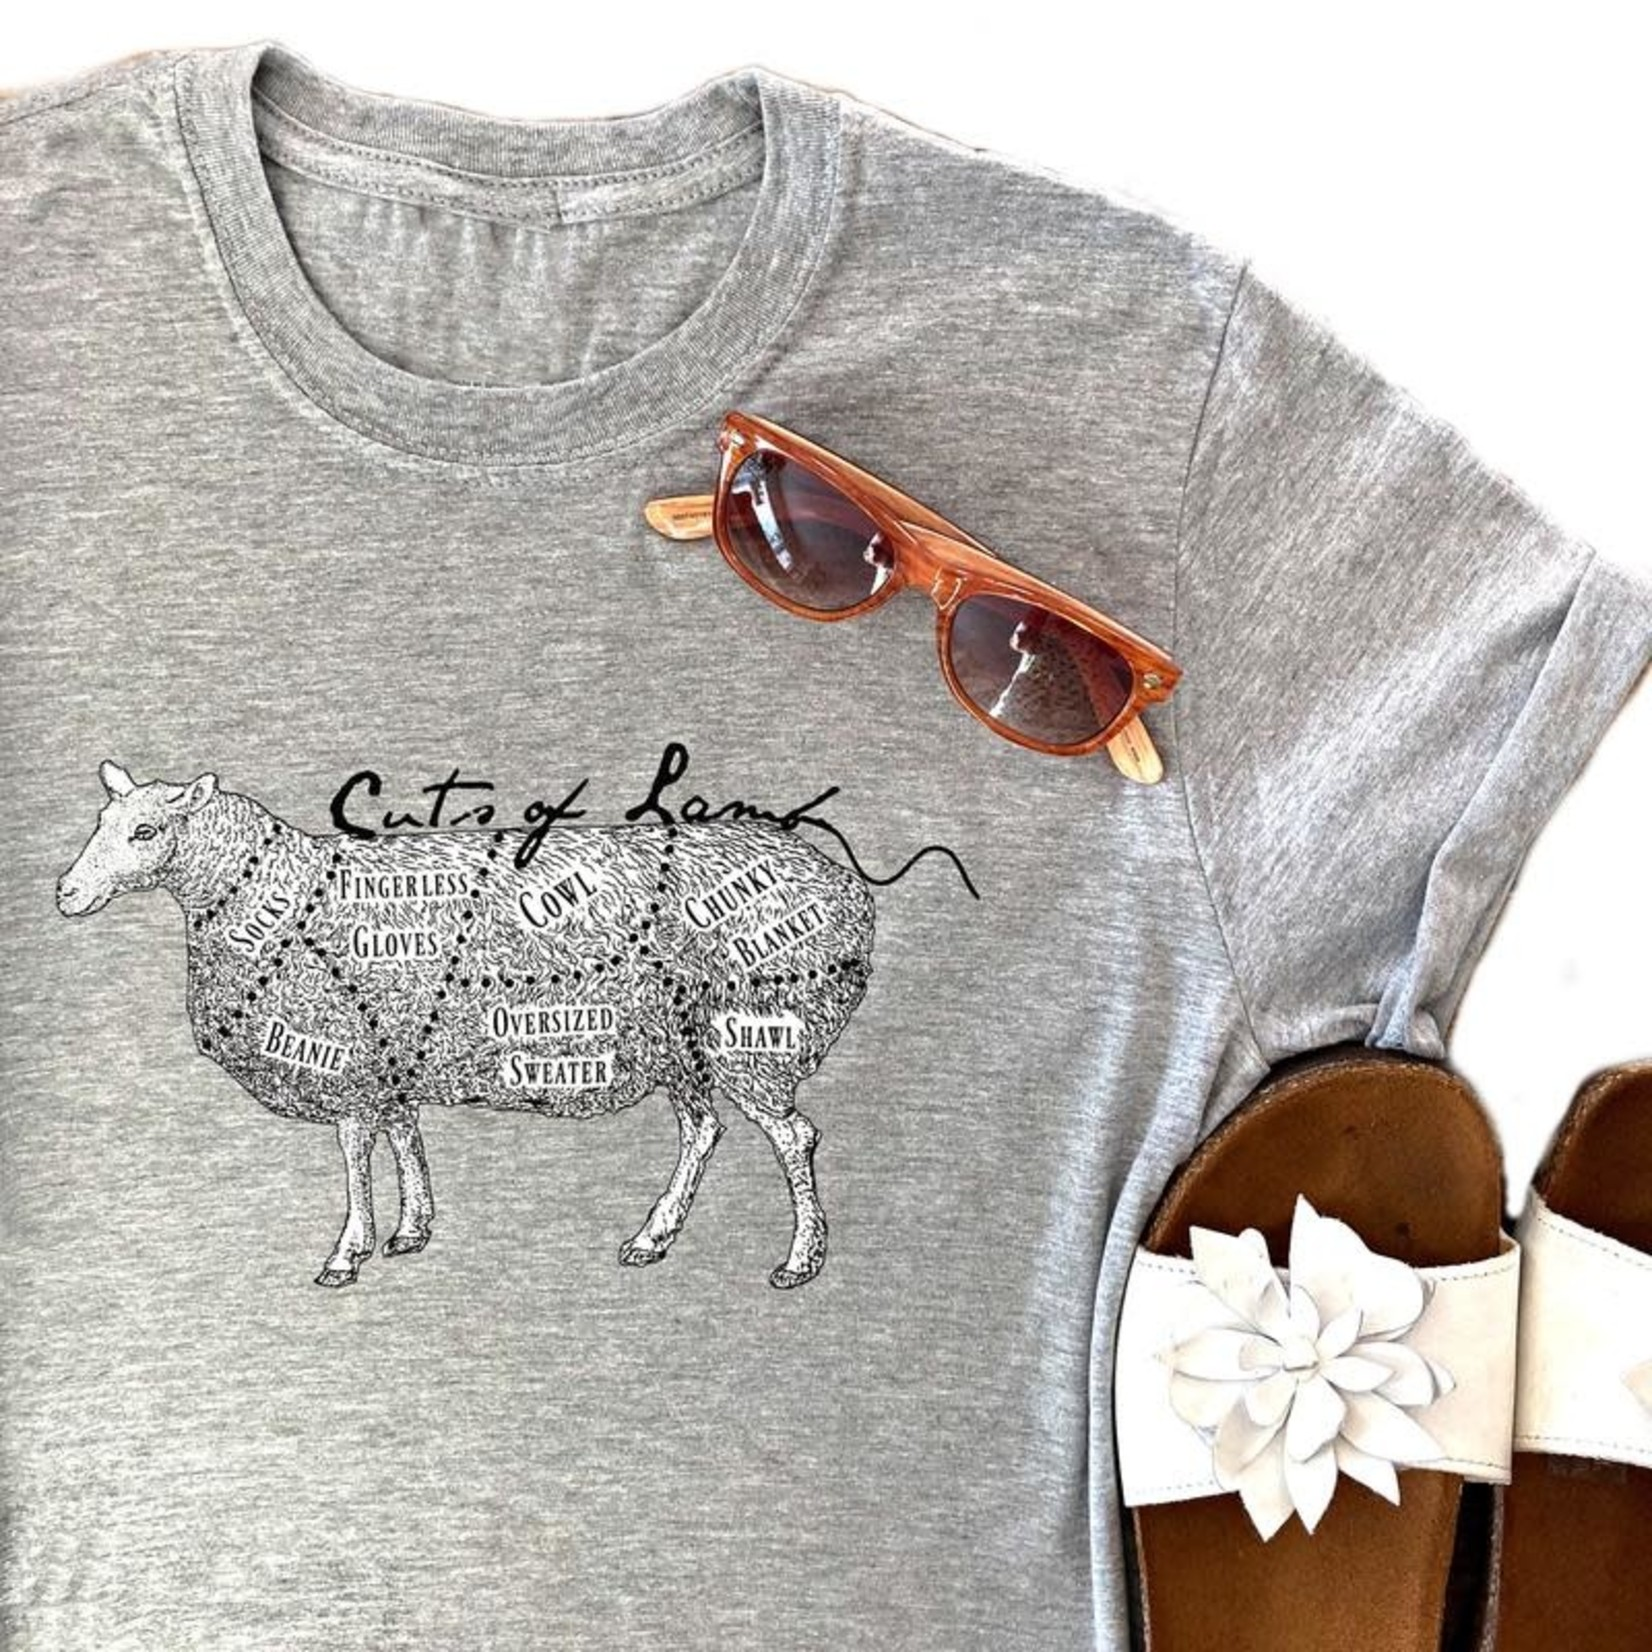 Firefly Notes Cuts of Lamb T-Shirt